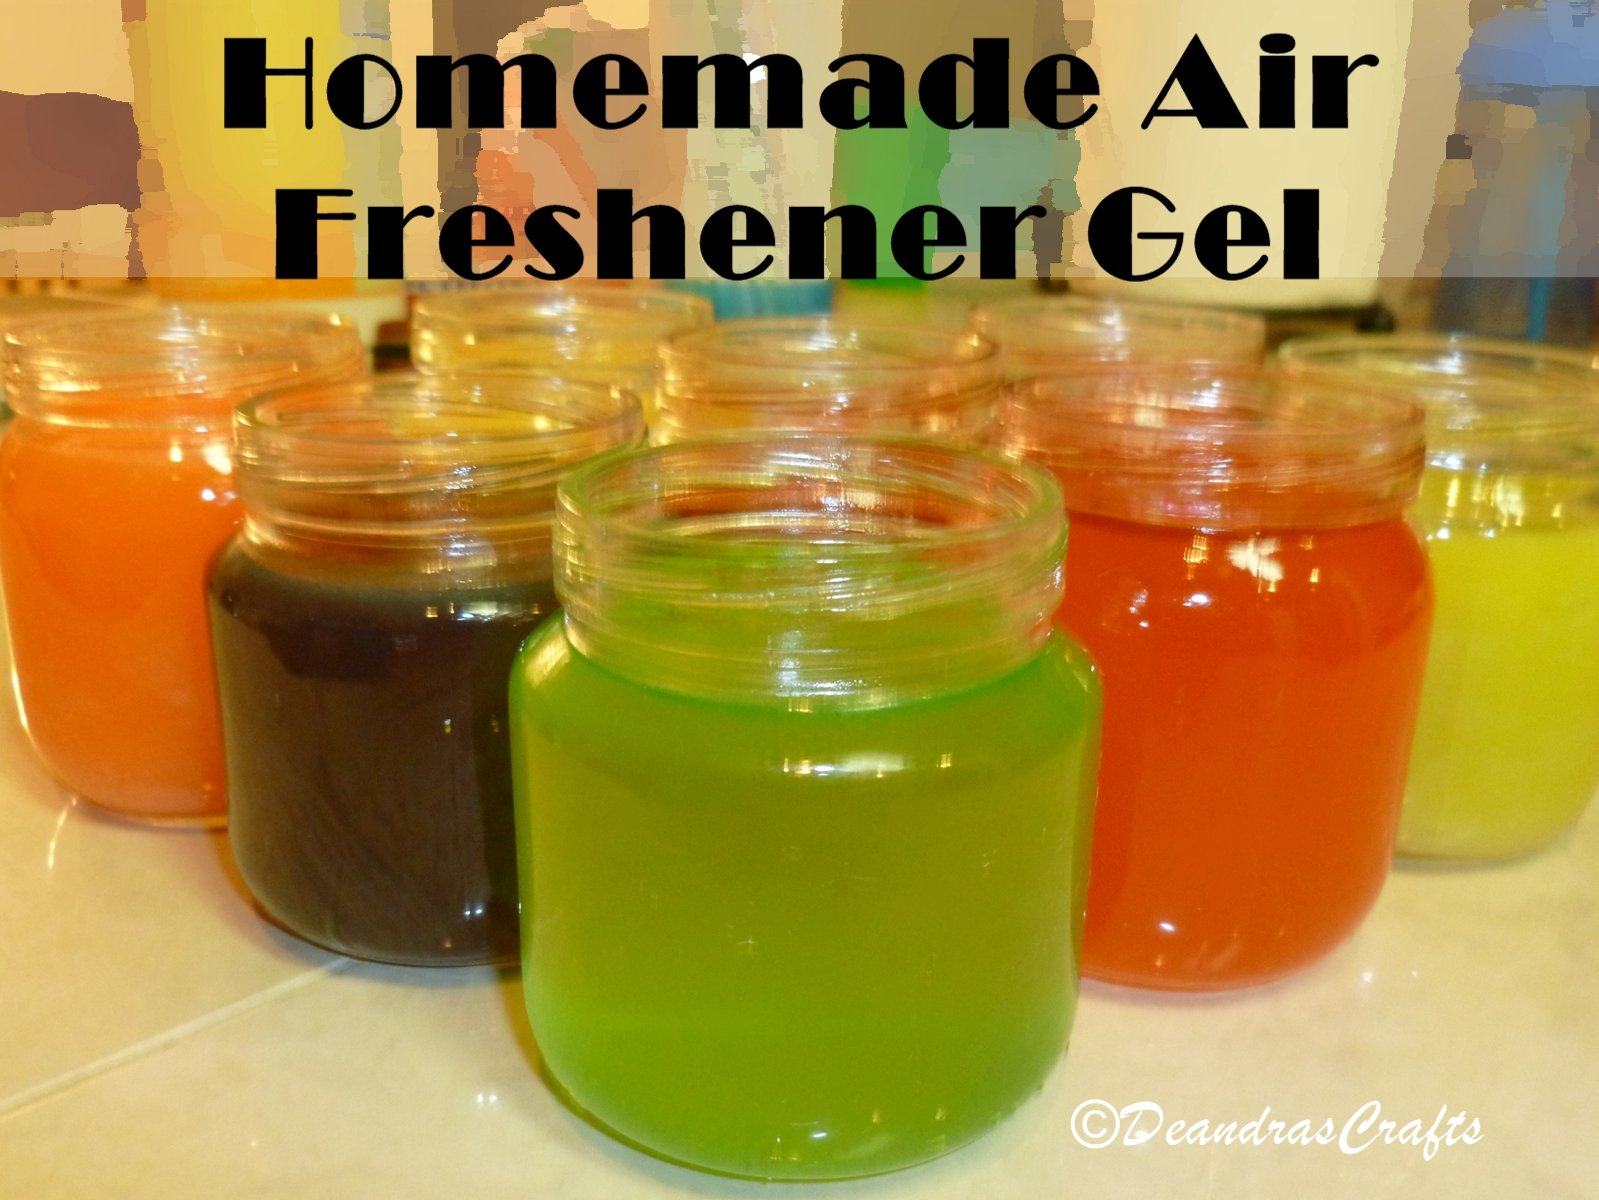 Homemade Air Freshener Gel With Pictures Instructables